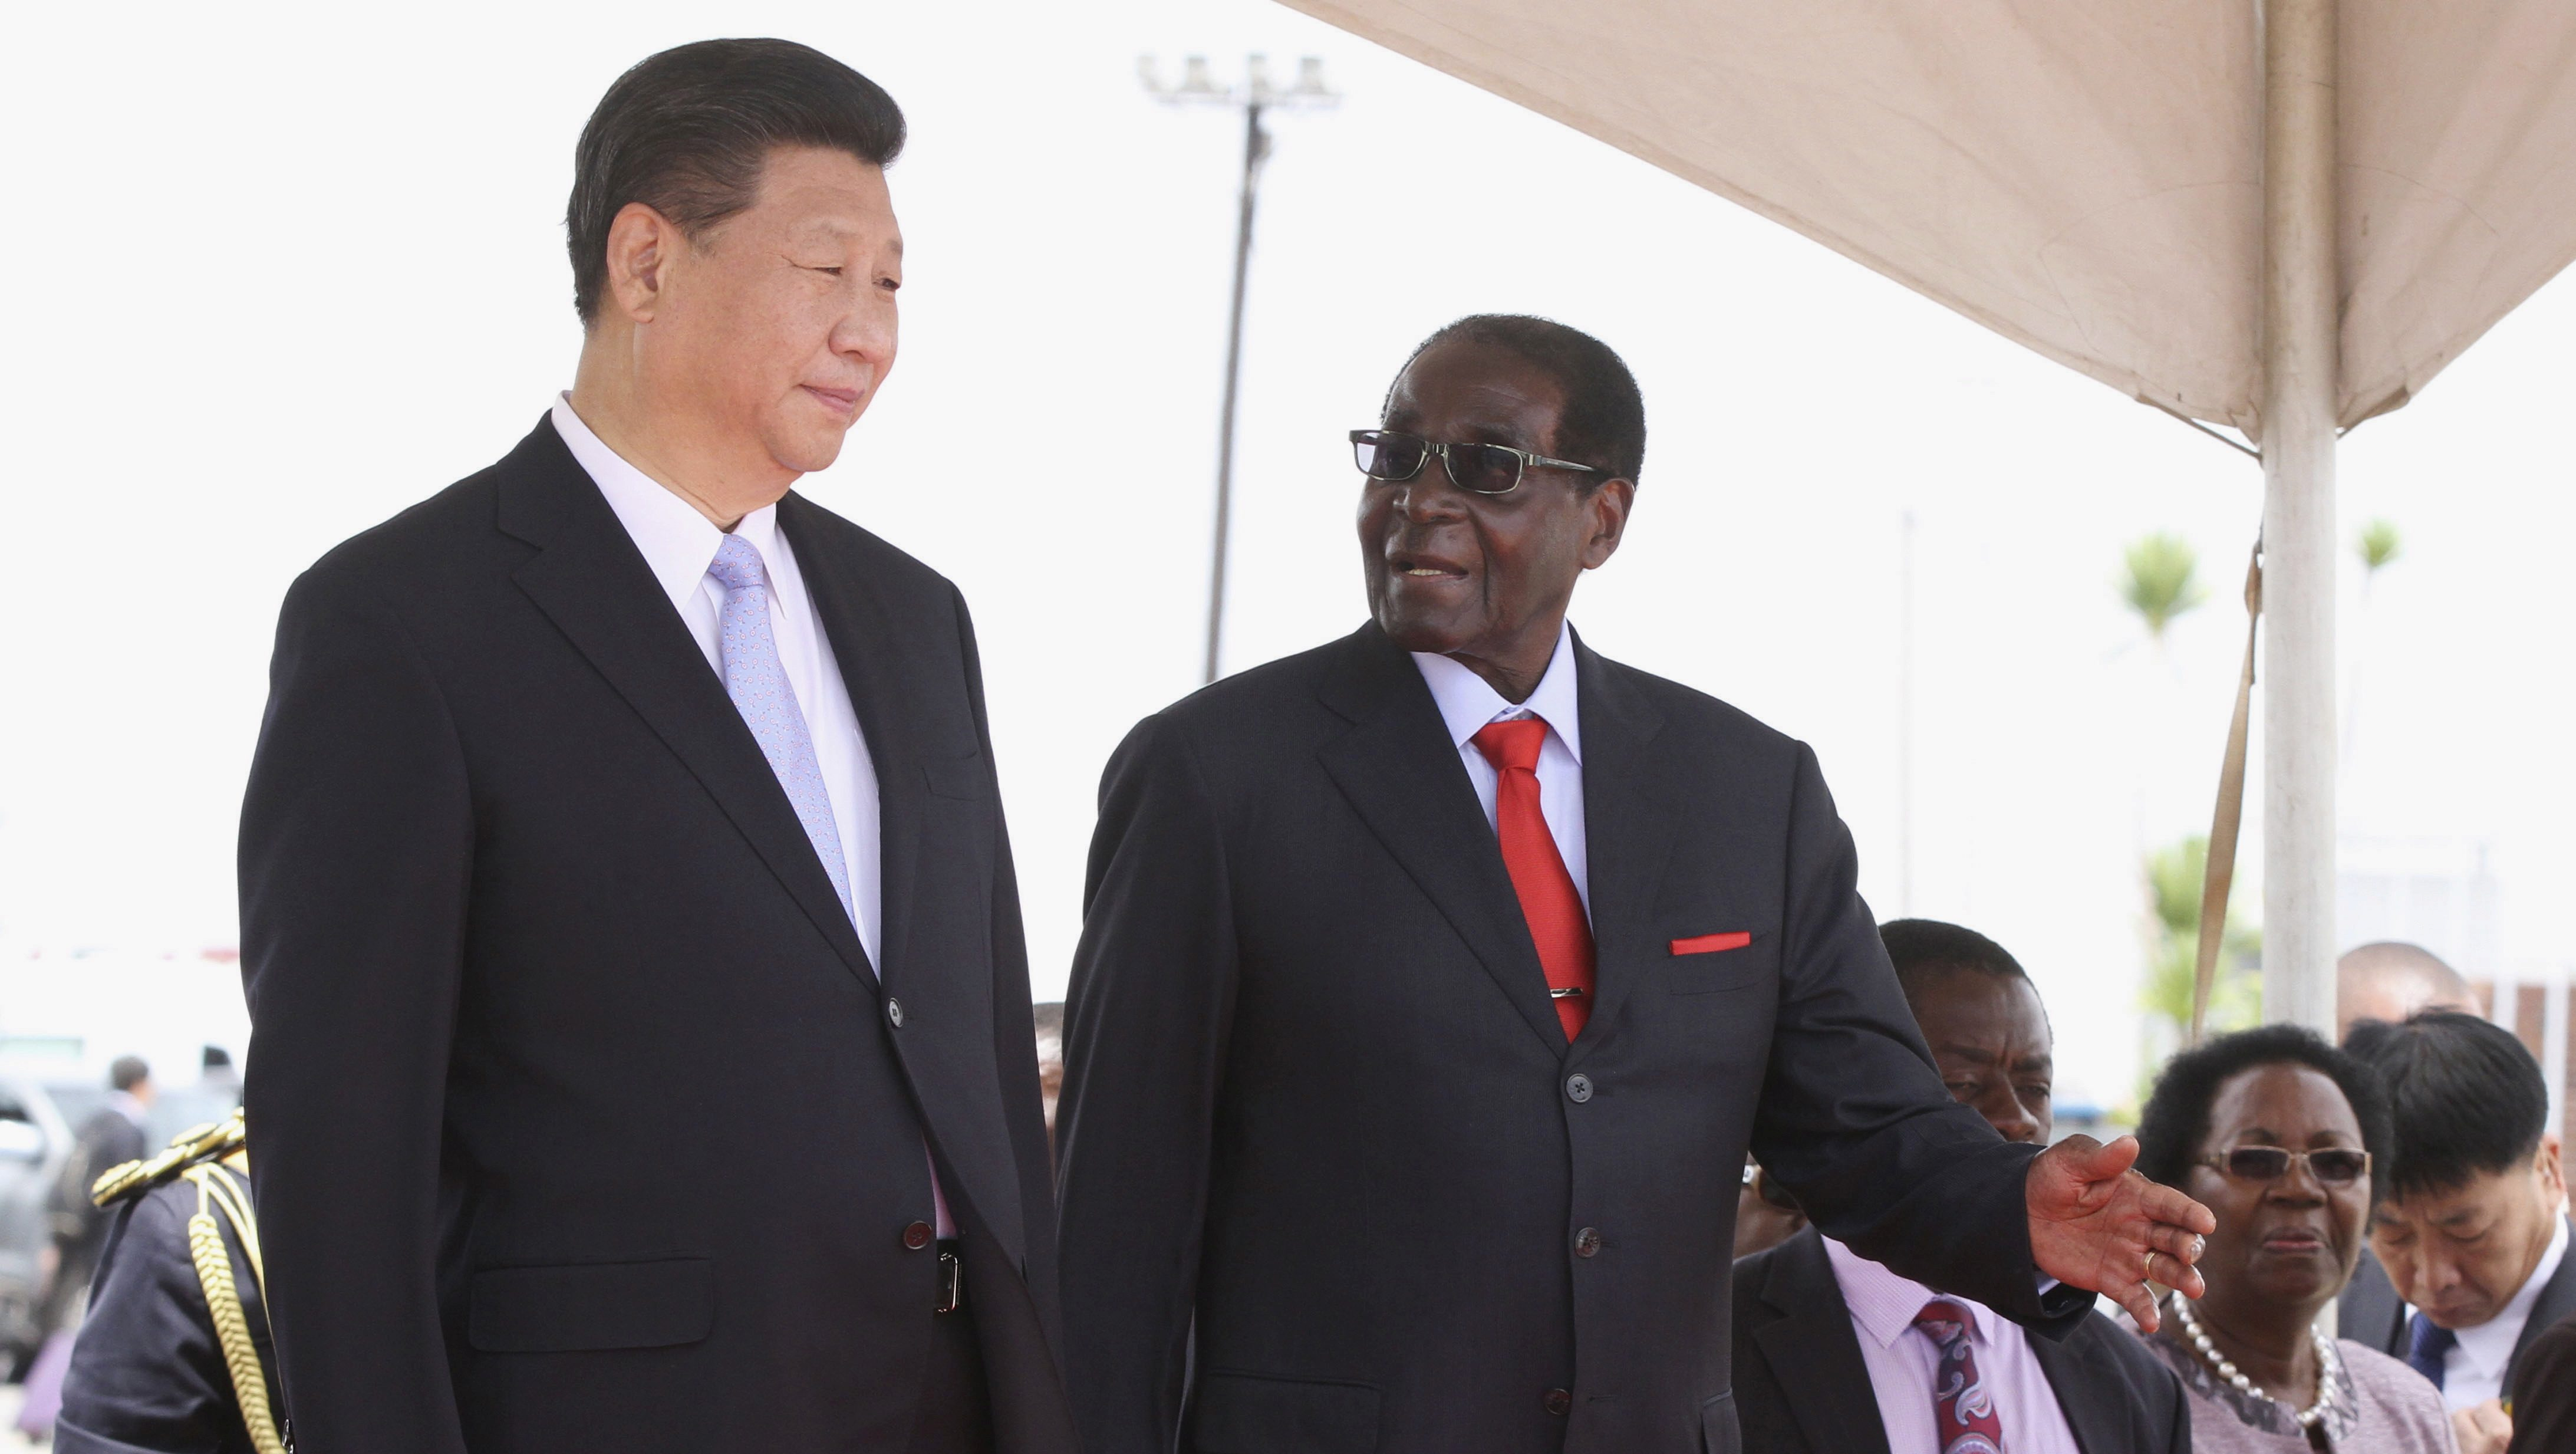 Chinese President Xi Jinping talks with Zimbabwean President Robert Mugabe on arrival for a state visit in Harare, Zimbabwe December 1, 2015.